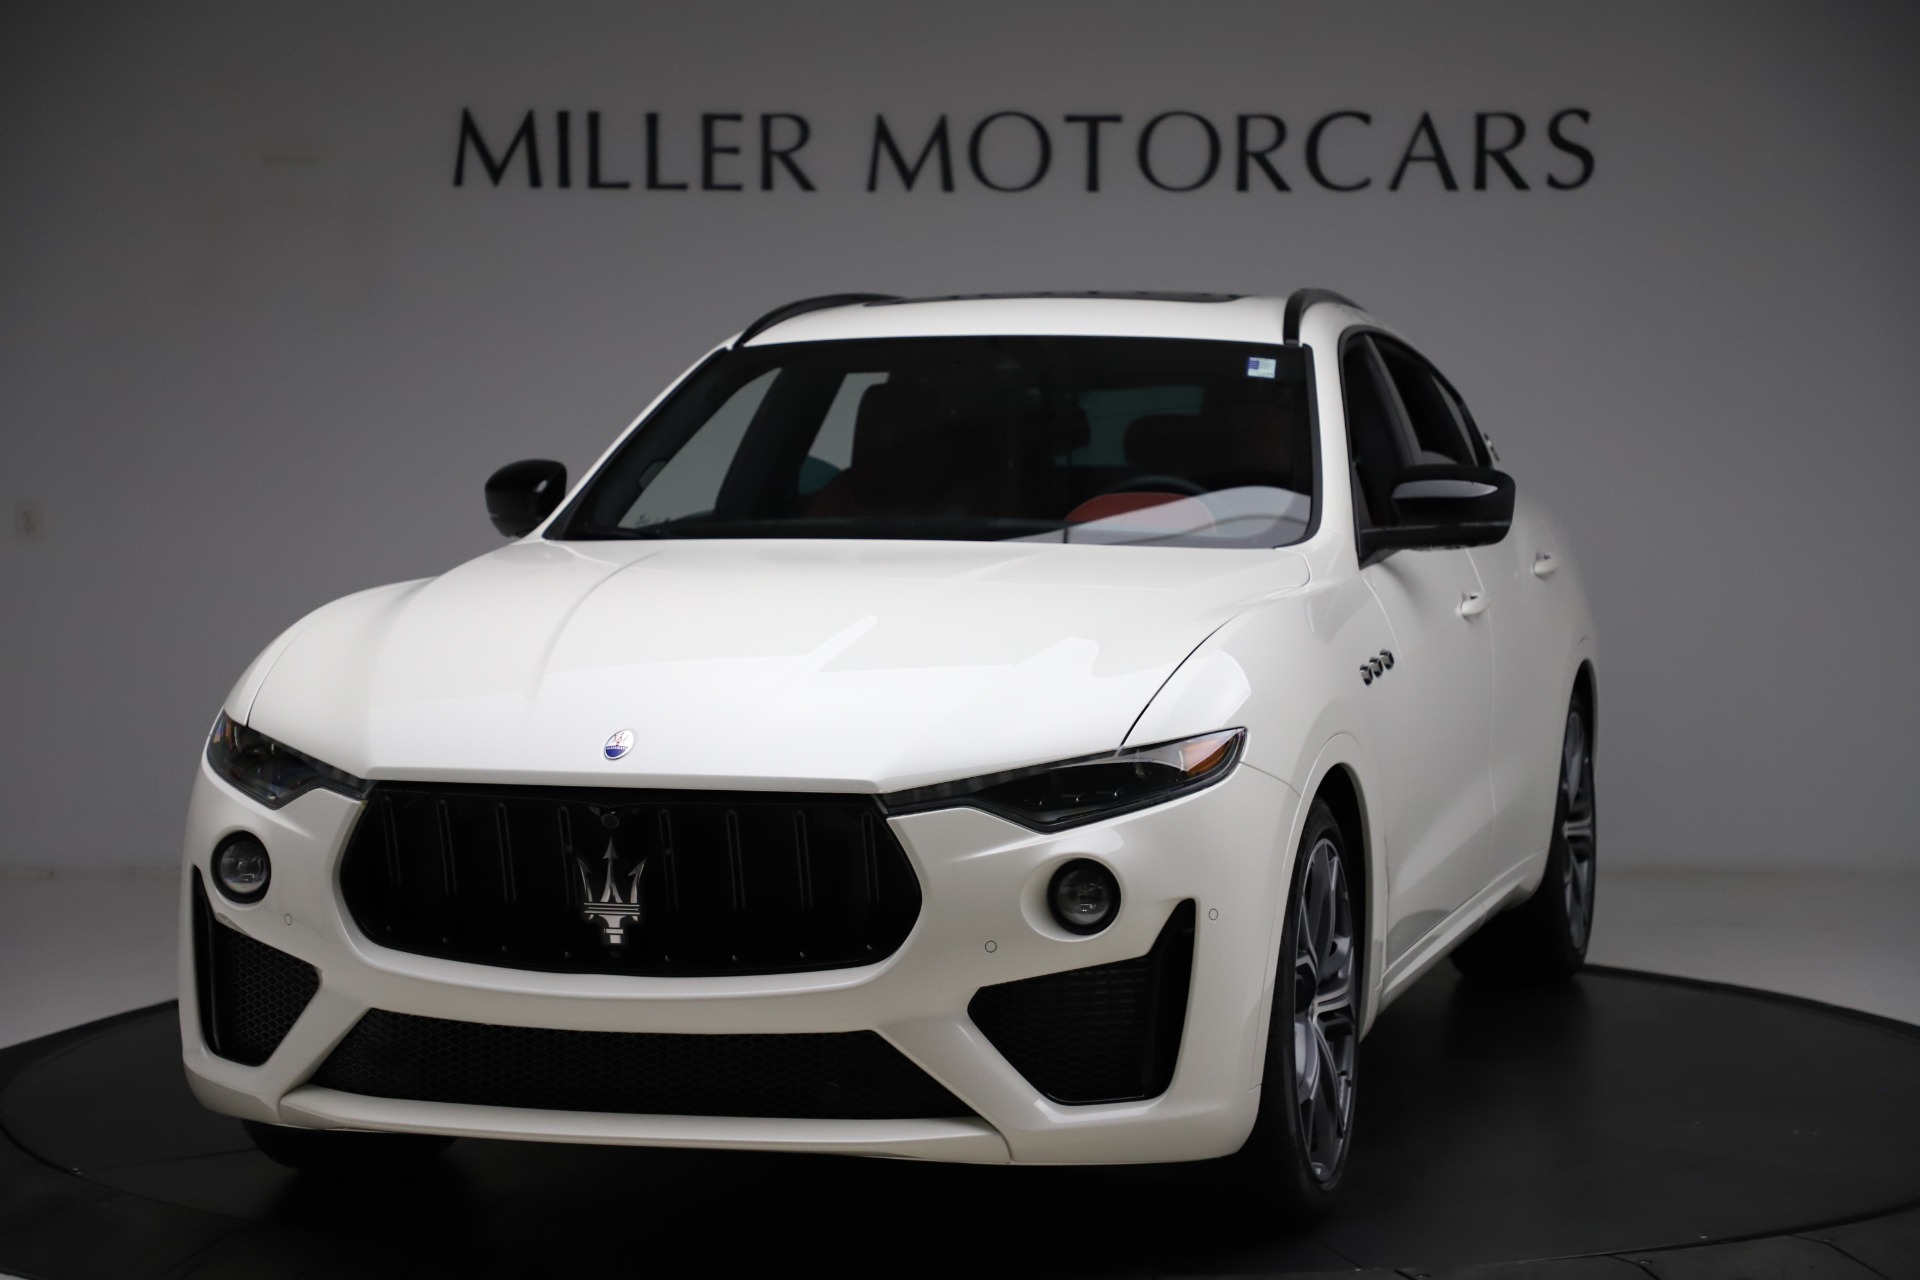 New 2021 Maserati Levante GTS for sale $140,585 at Bentley Greenwich in Greenwich CT 06830 1